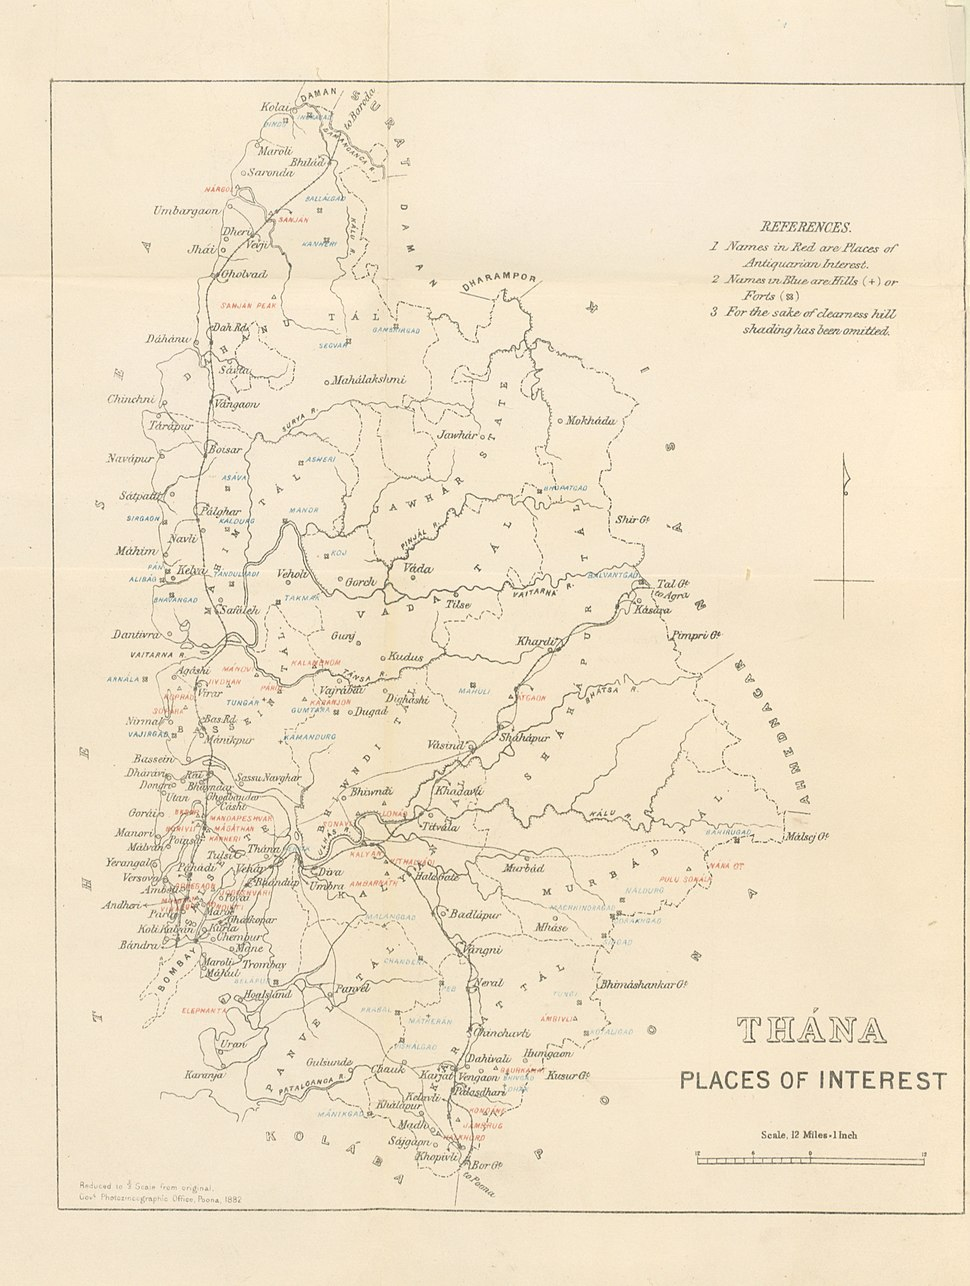 Thana district Places of Interest 1896 map